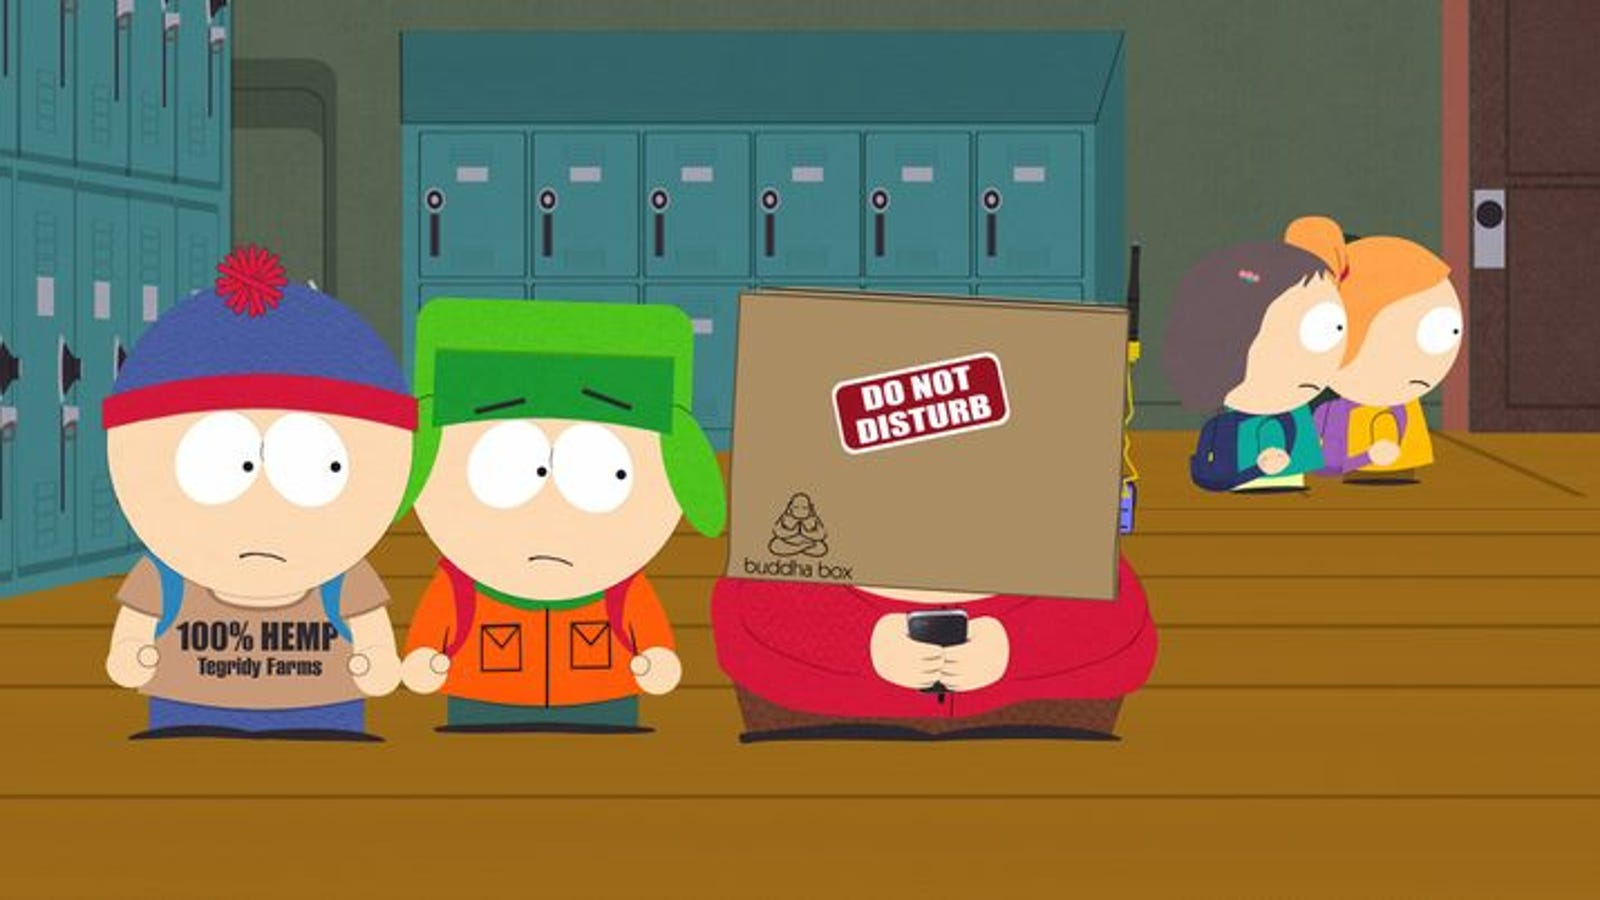 Heavy-handedness about smartphones mars an otherwise enjoyable South Park